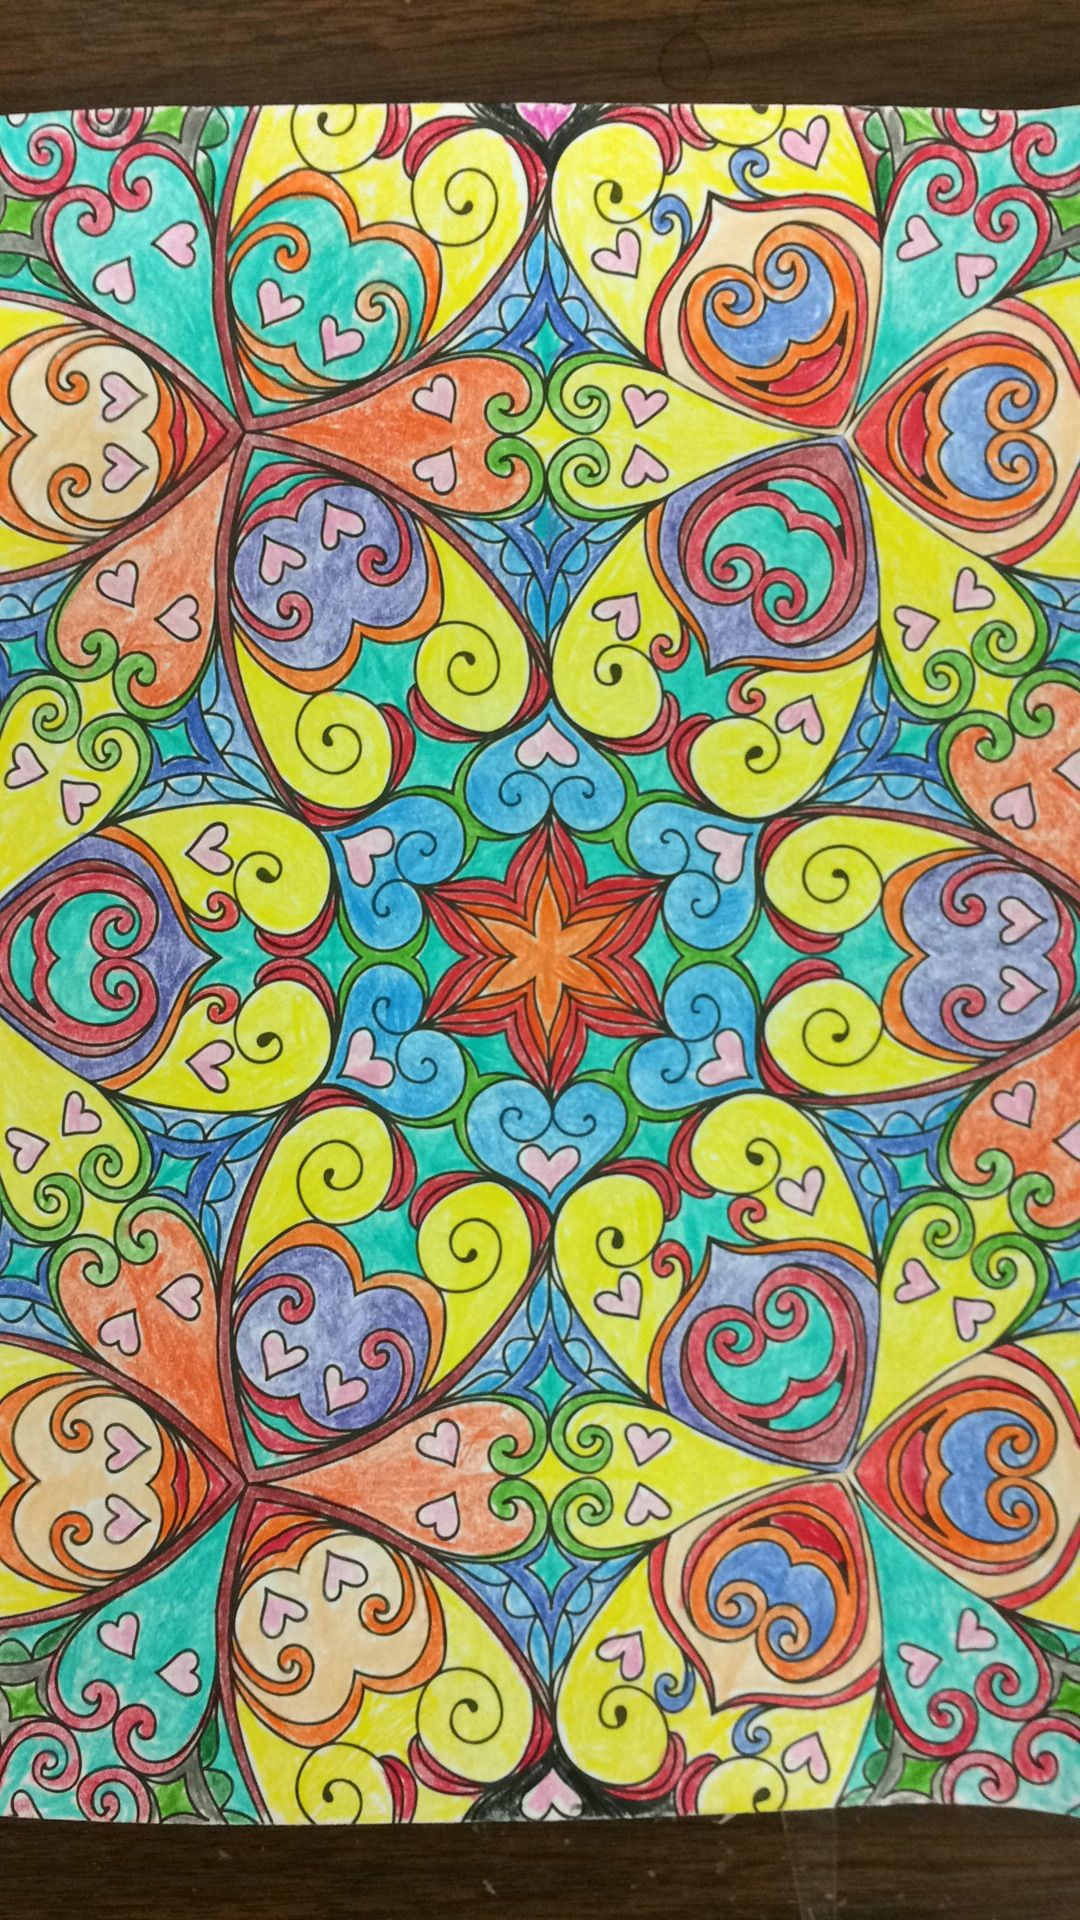 Color art kaleidoscope - Kaleidoscope Wonders Color Art For Everyone Imgur